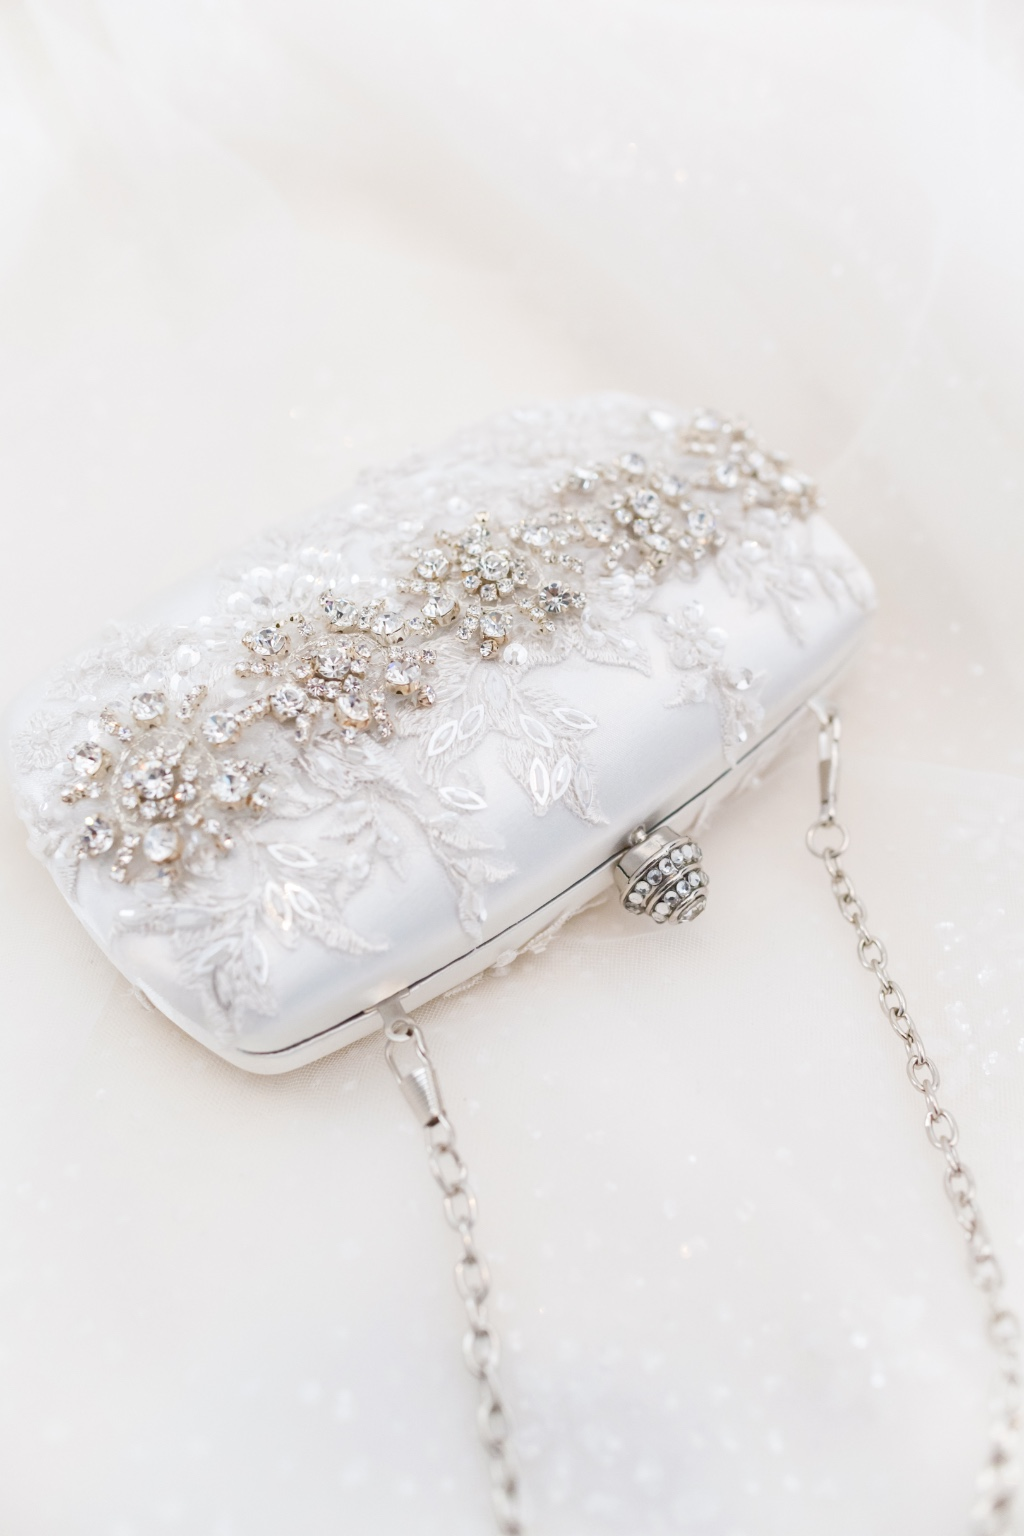 Bespoke couture bridal clutches that finish your bridal look